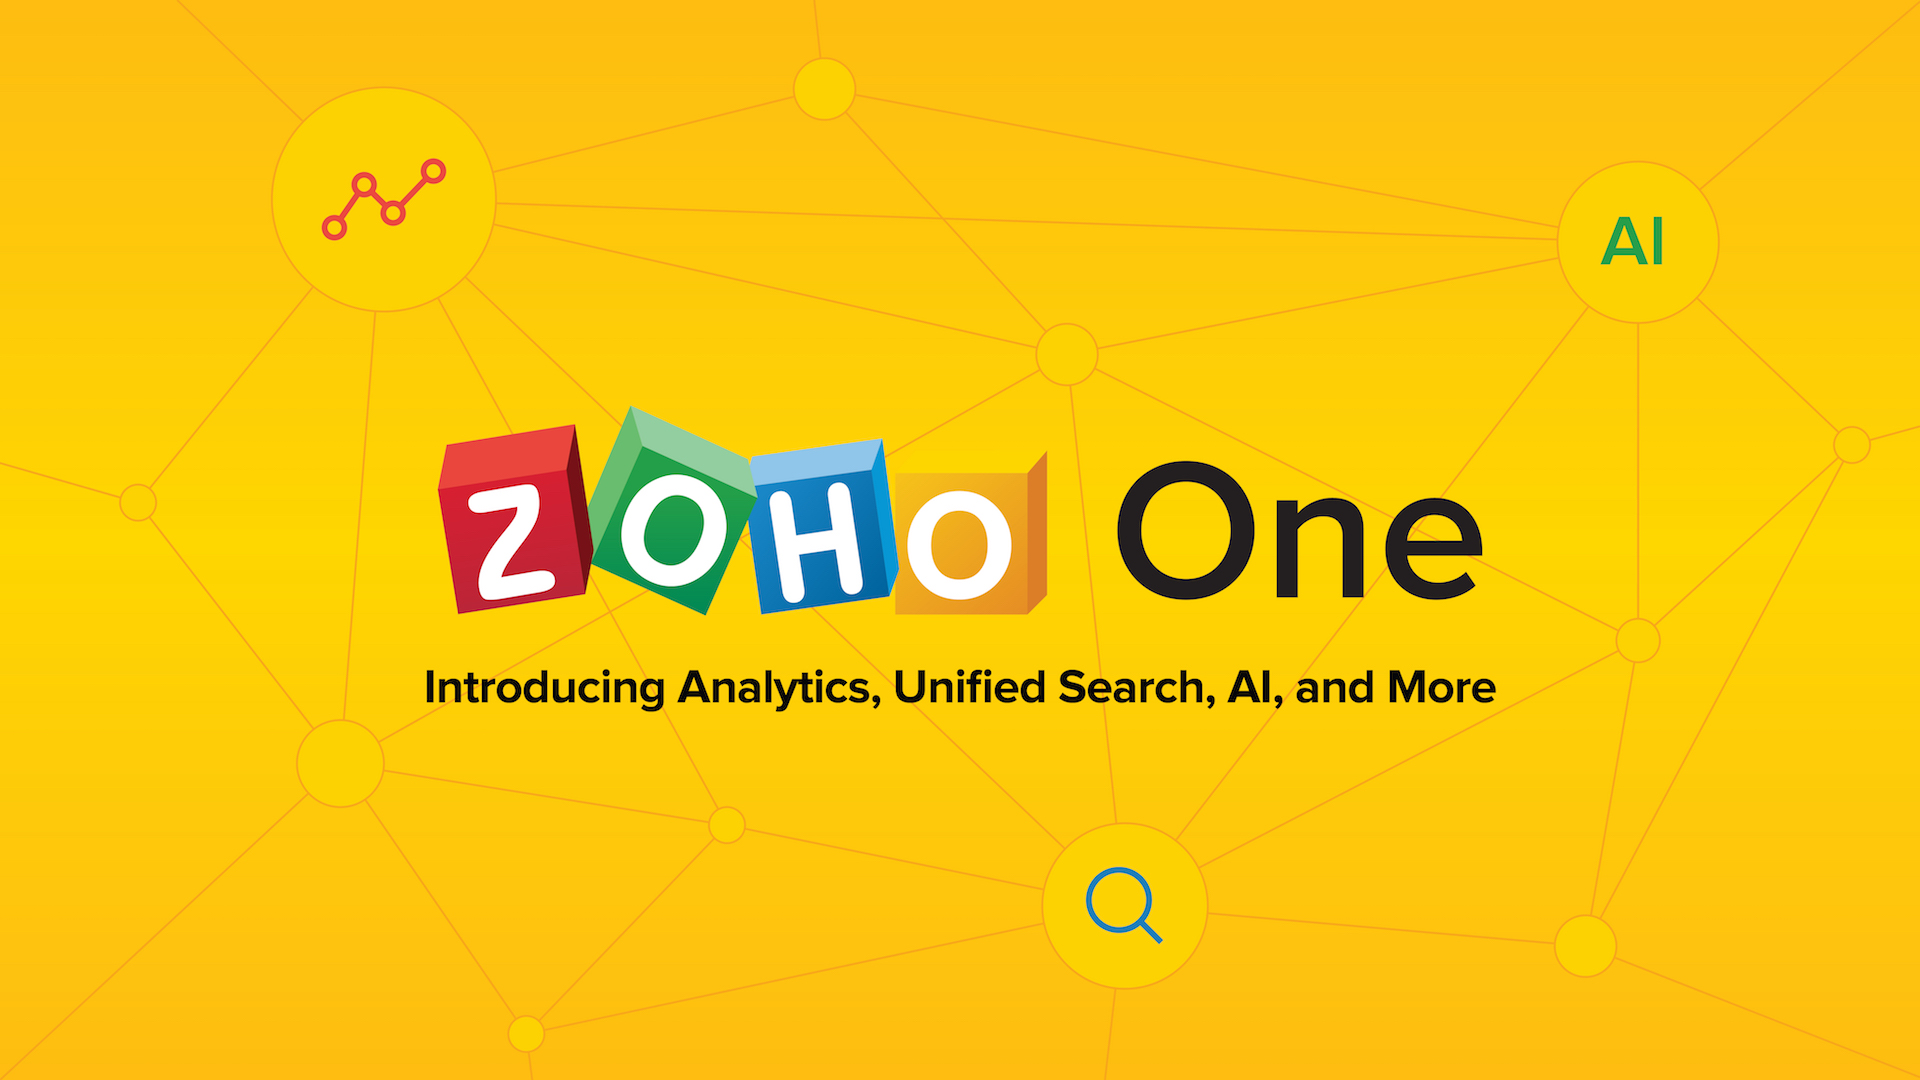 One Year of Zoho One: Introducing Analytics, Unified Search,AI,and More